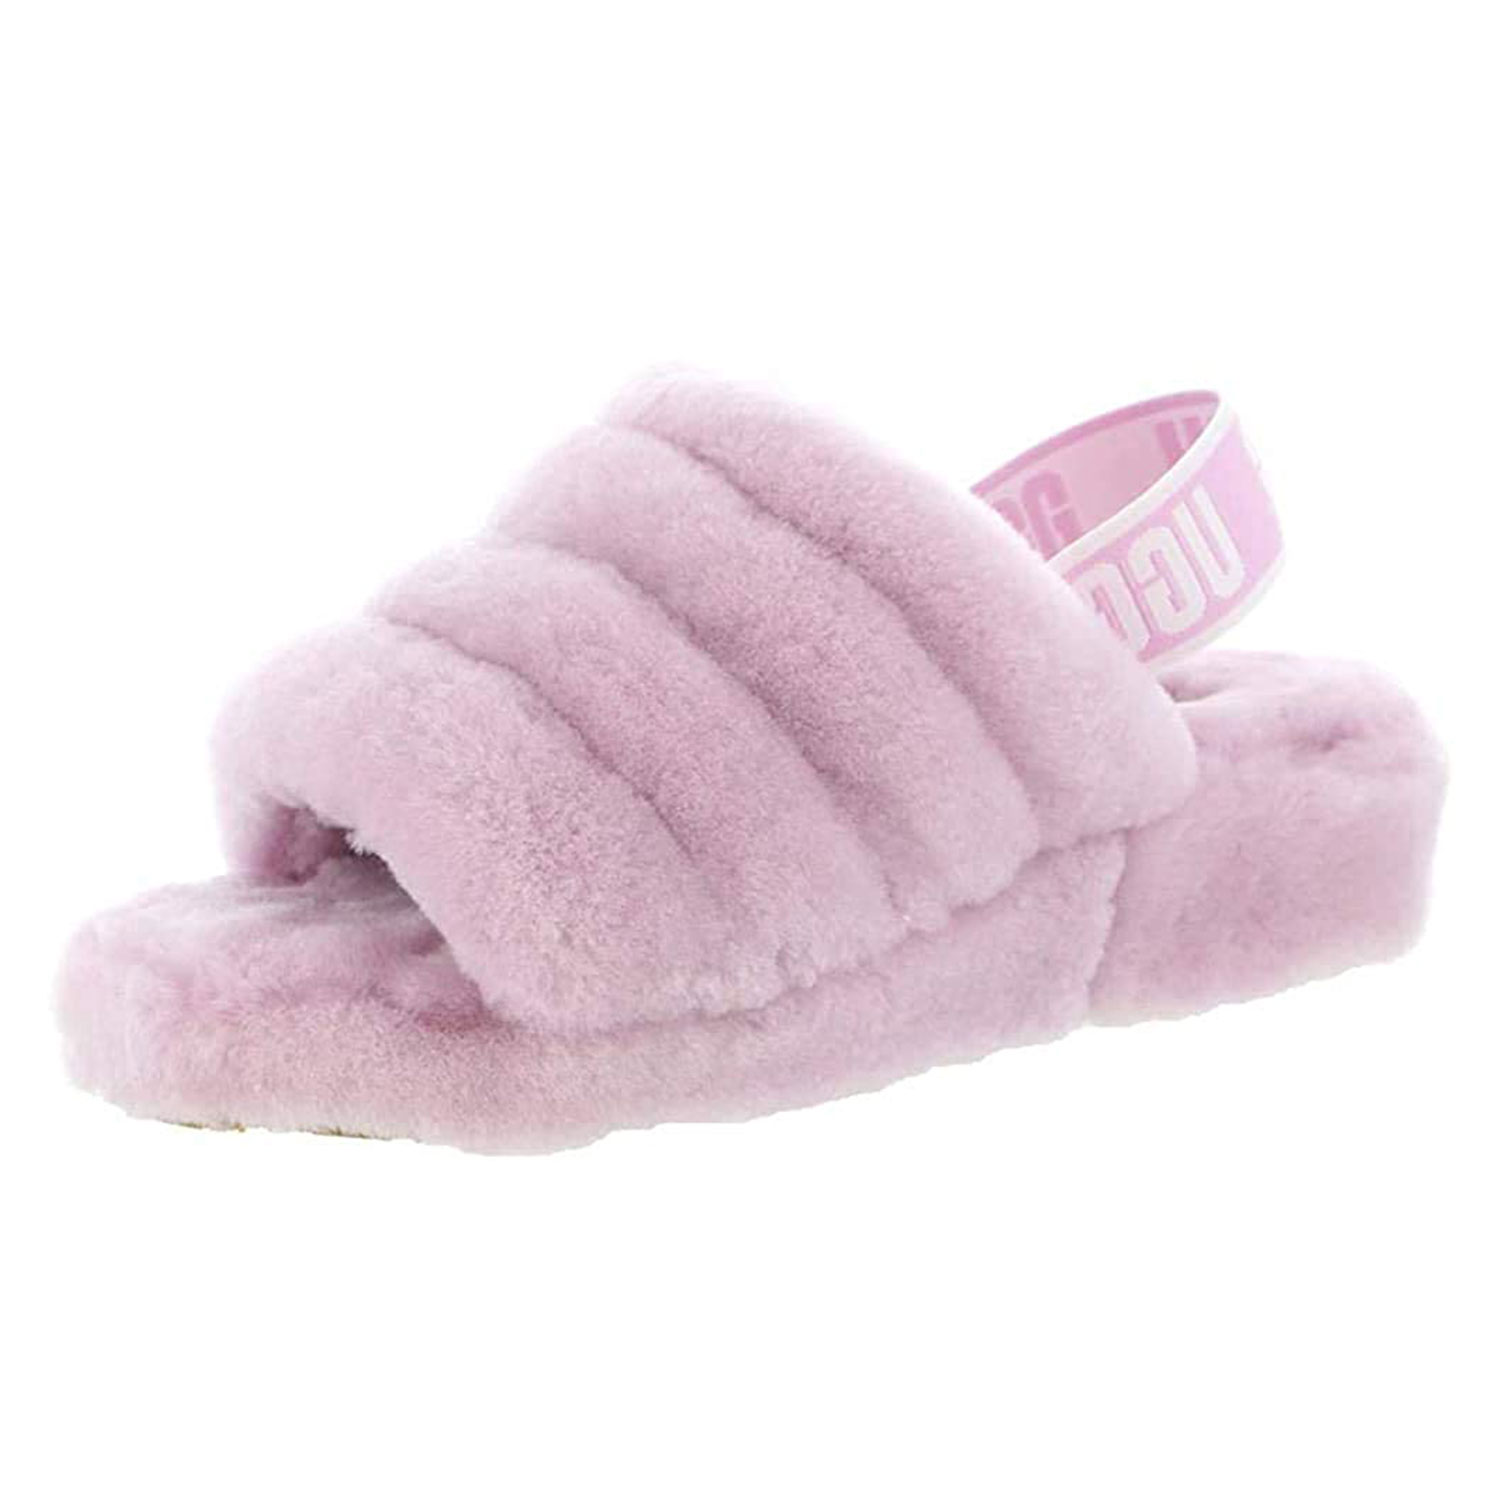 ugg women's fluff yea slide slipper